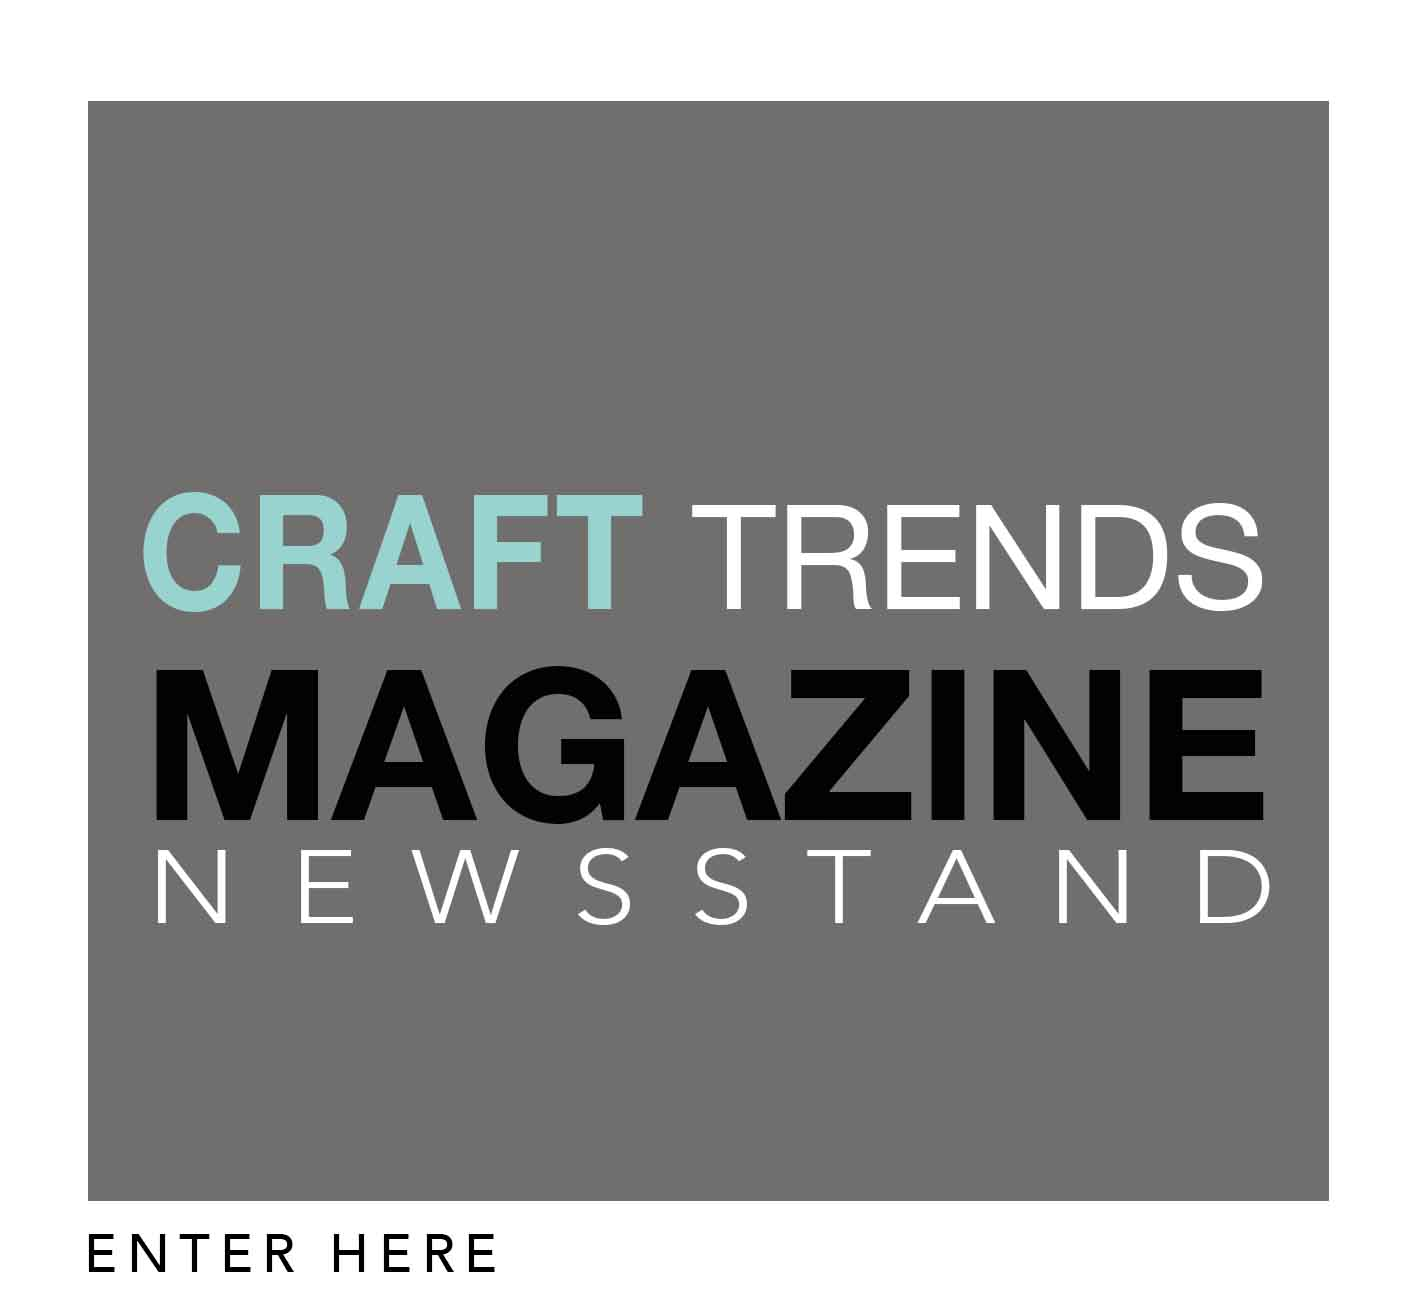 VISIT-THE-NEWSSTAND-BANNER - CRAFT-TRENDS-MAGAZINE-22quick-link22